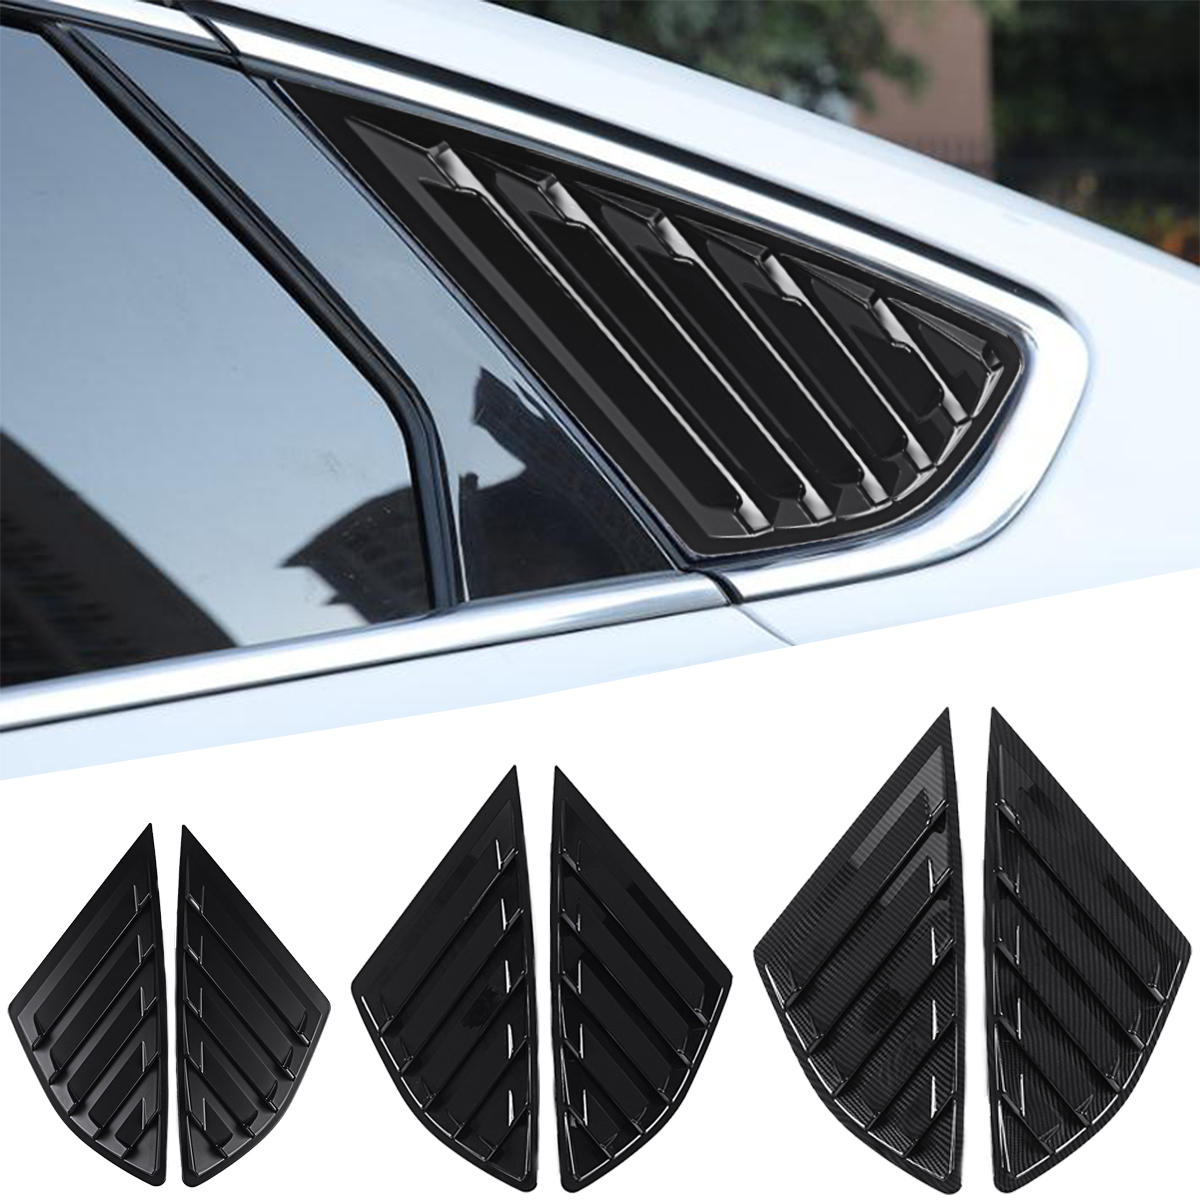 Car Rear Quarter Panel Side Vent Window Louvers Cover for Ford Fusion Mondeo 4 Door, Banggood  - buy with discount